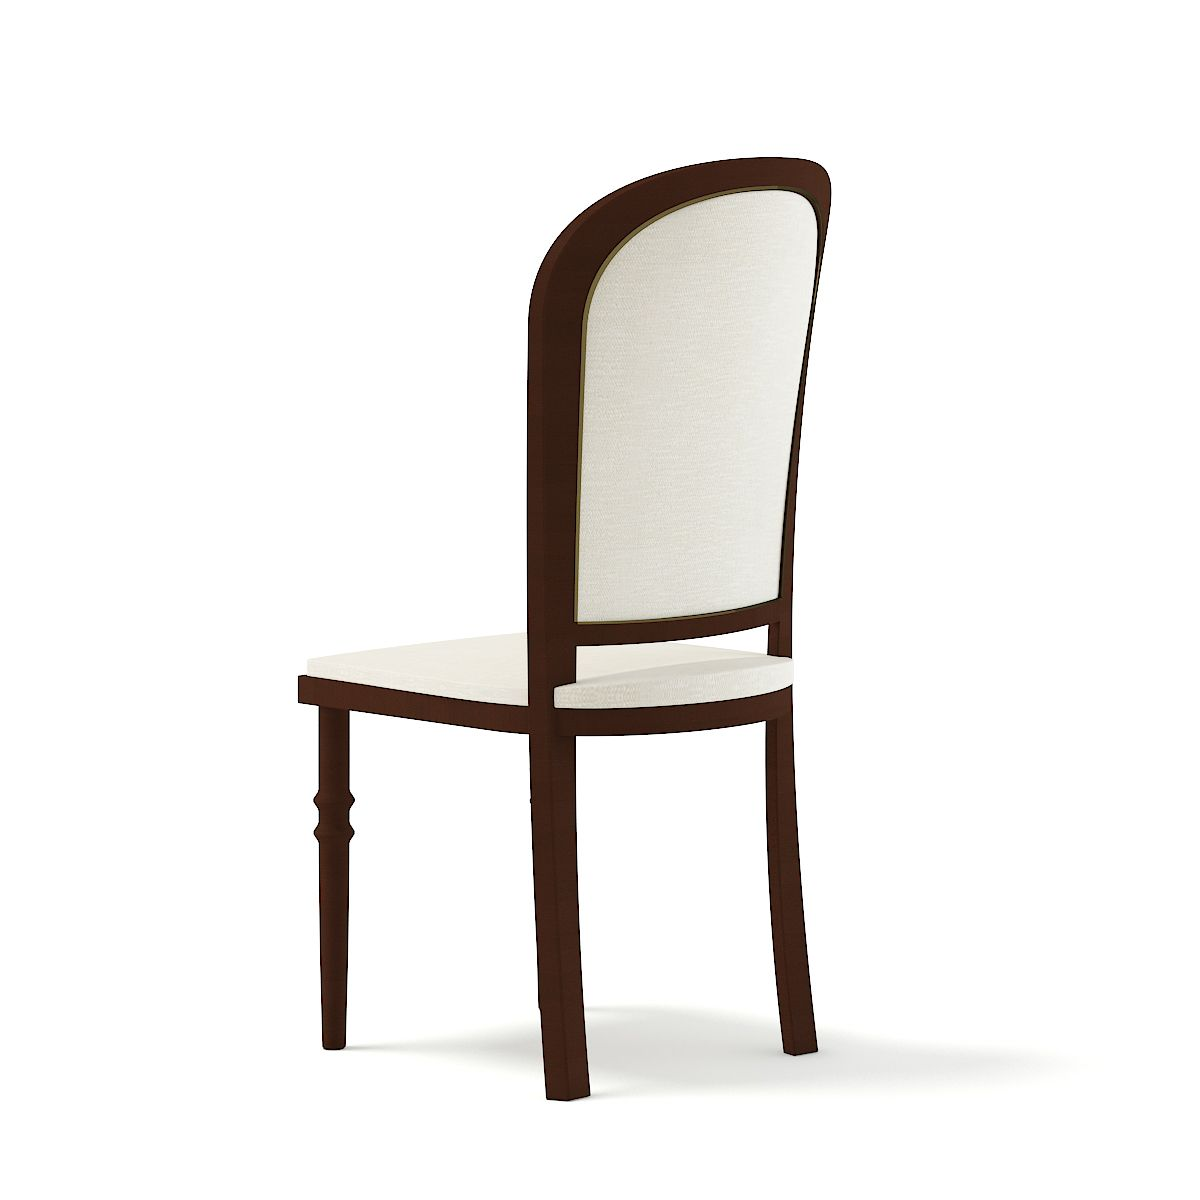 Classic Wooden Chair 9D Model #Wooden, #Classic, #Model, #Chair